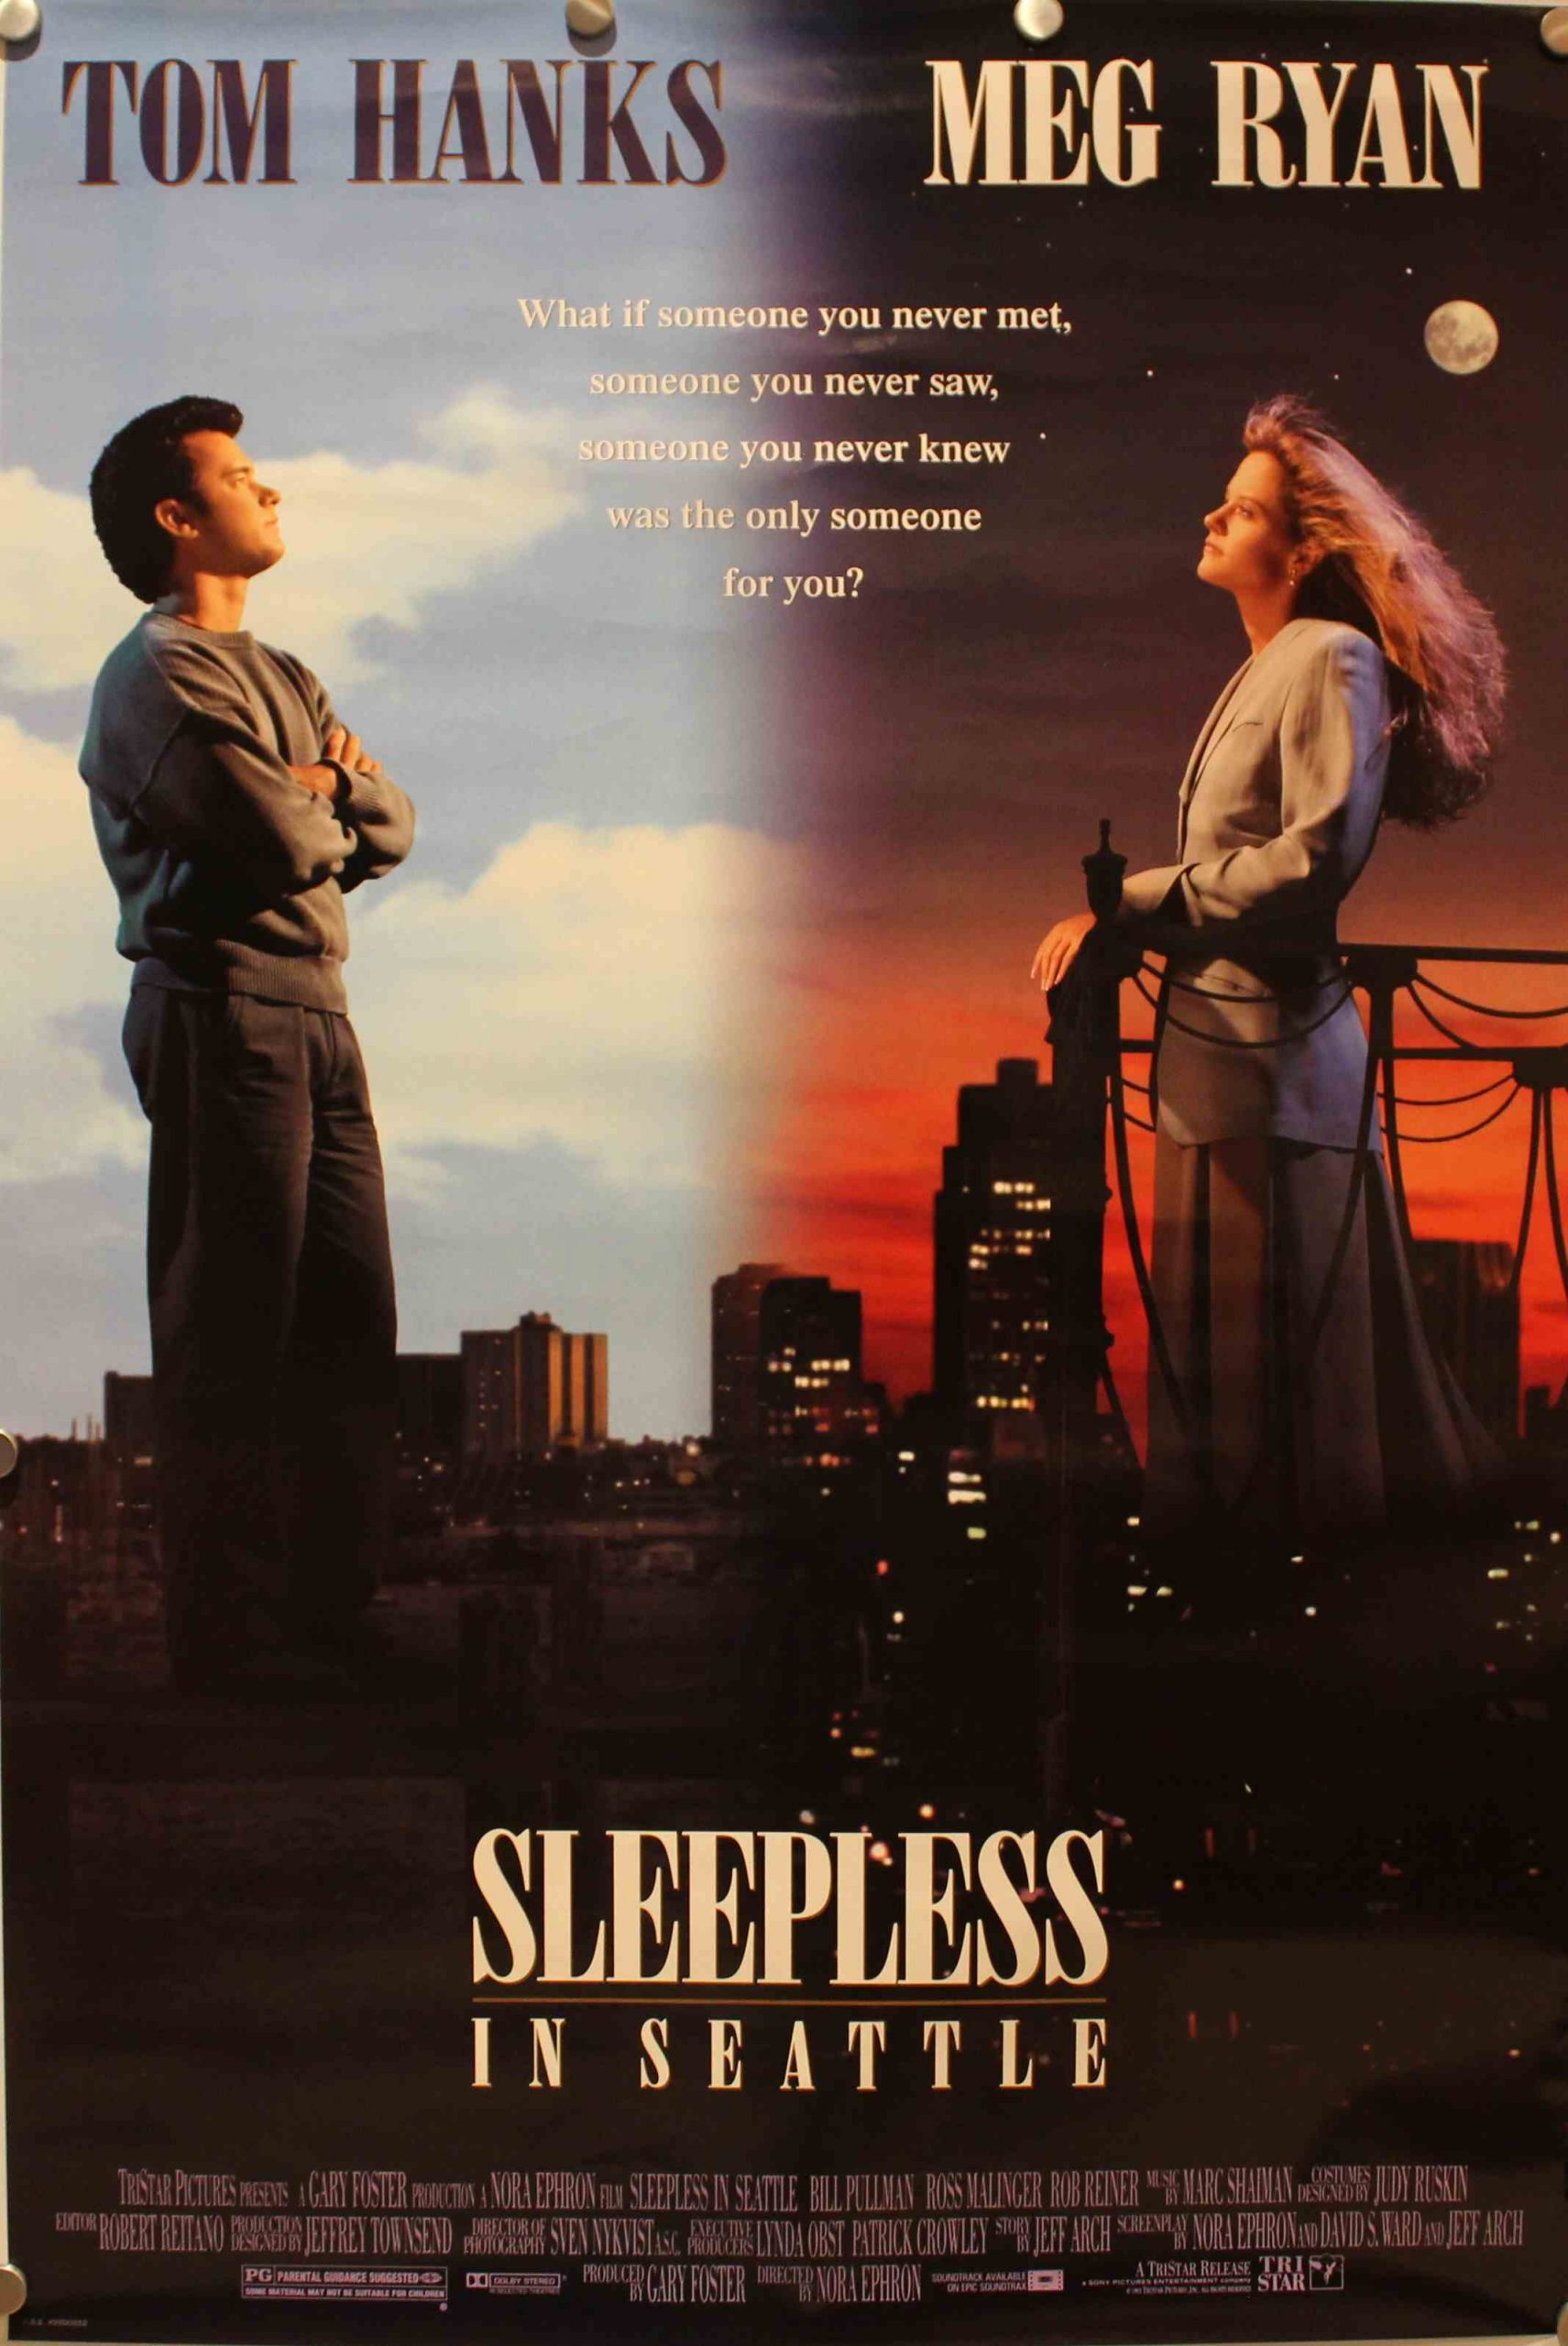 Sleepless in Seattle - The world of Premiere Movie Posters.